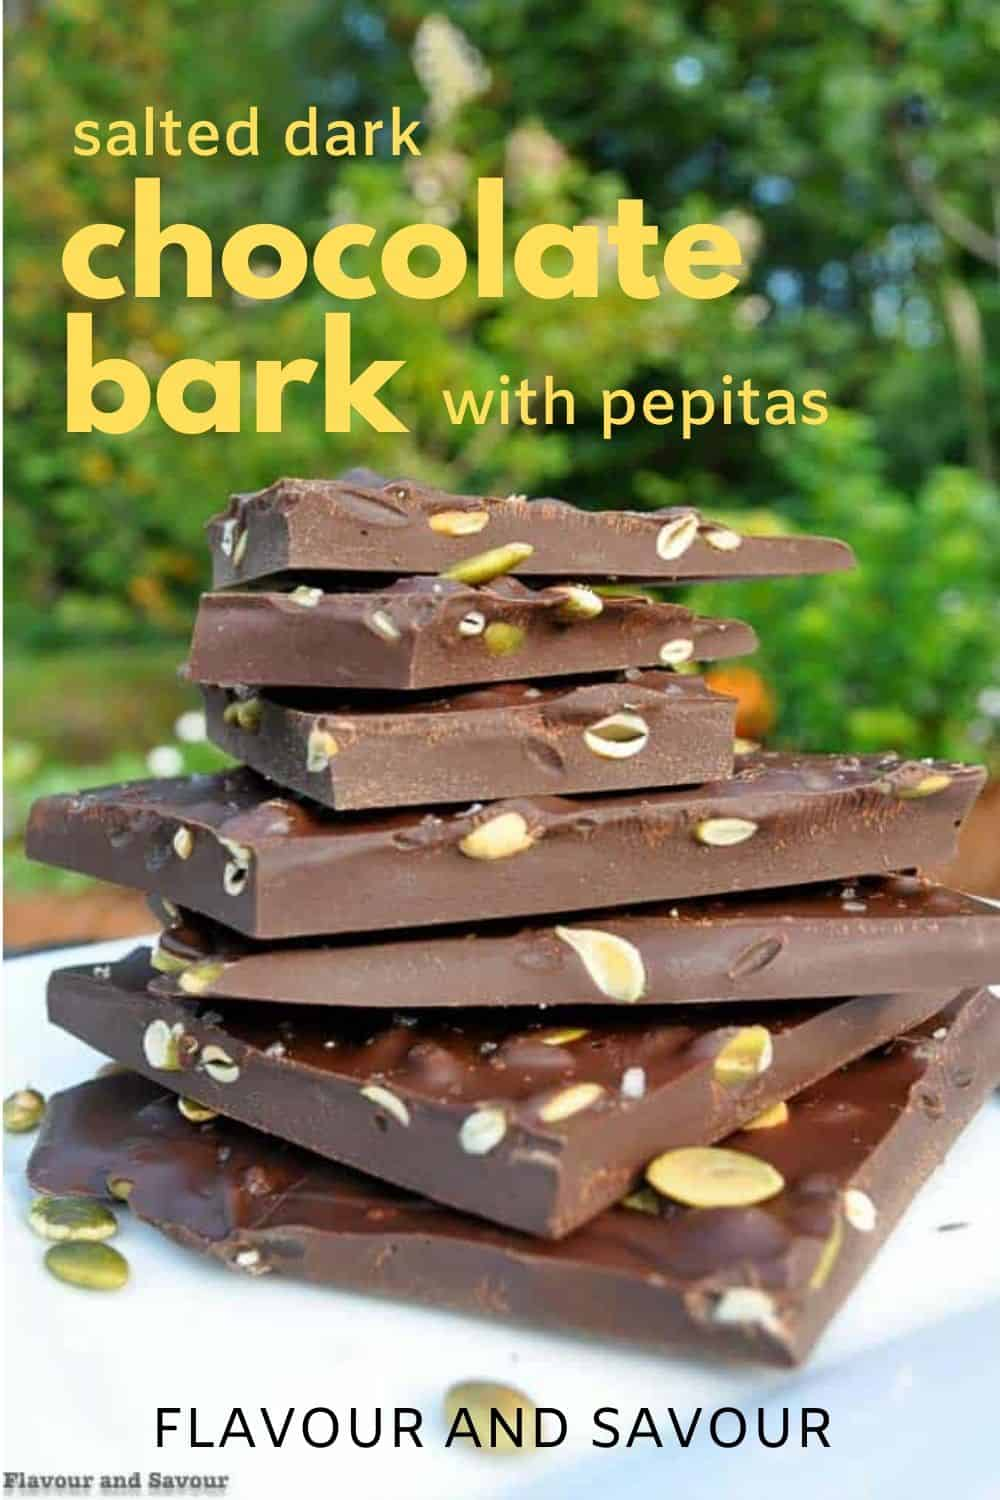 Salted Dark Chocolate Bark with pepitas with text